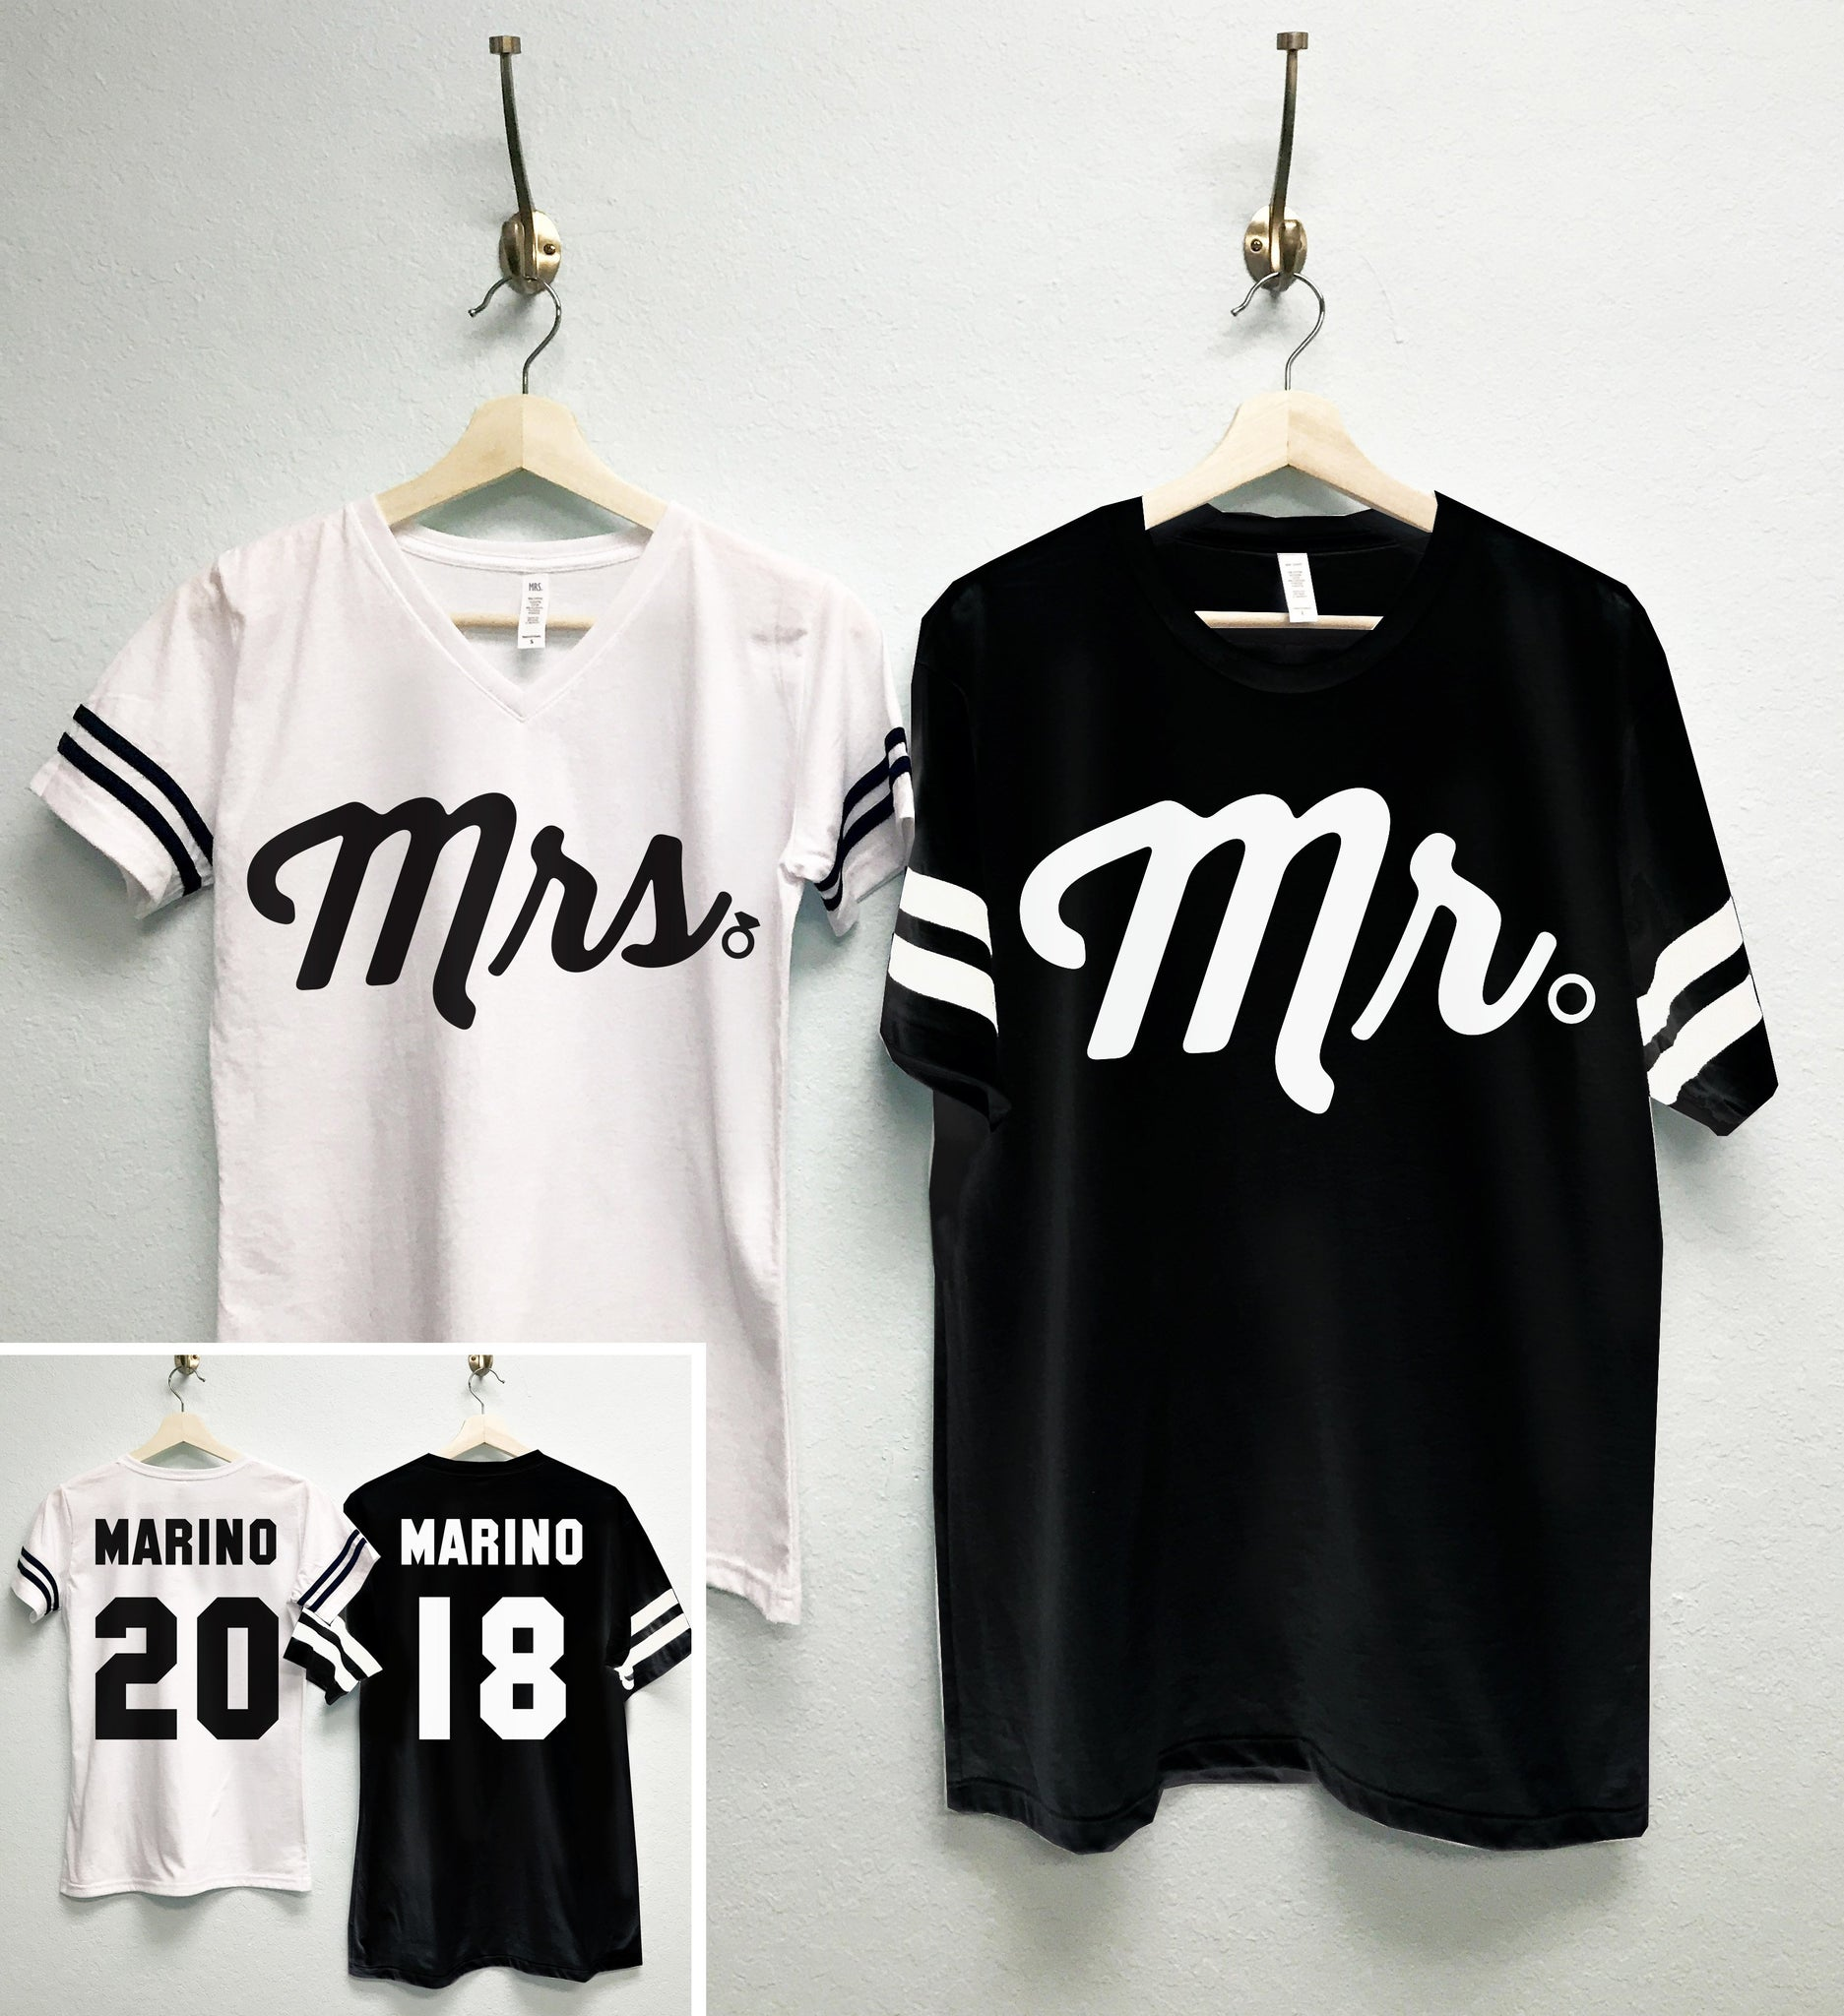 MRS Bride Shirt + MR Groom Tees CUSTOM Names &